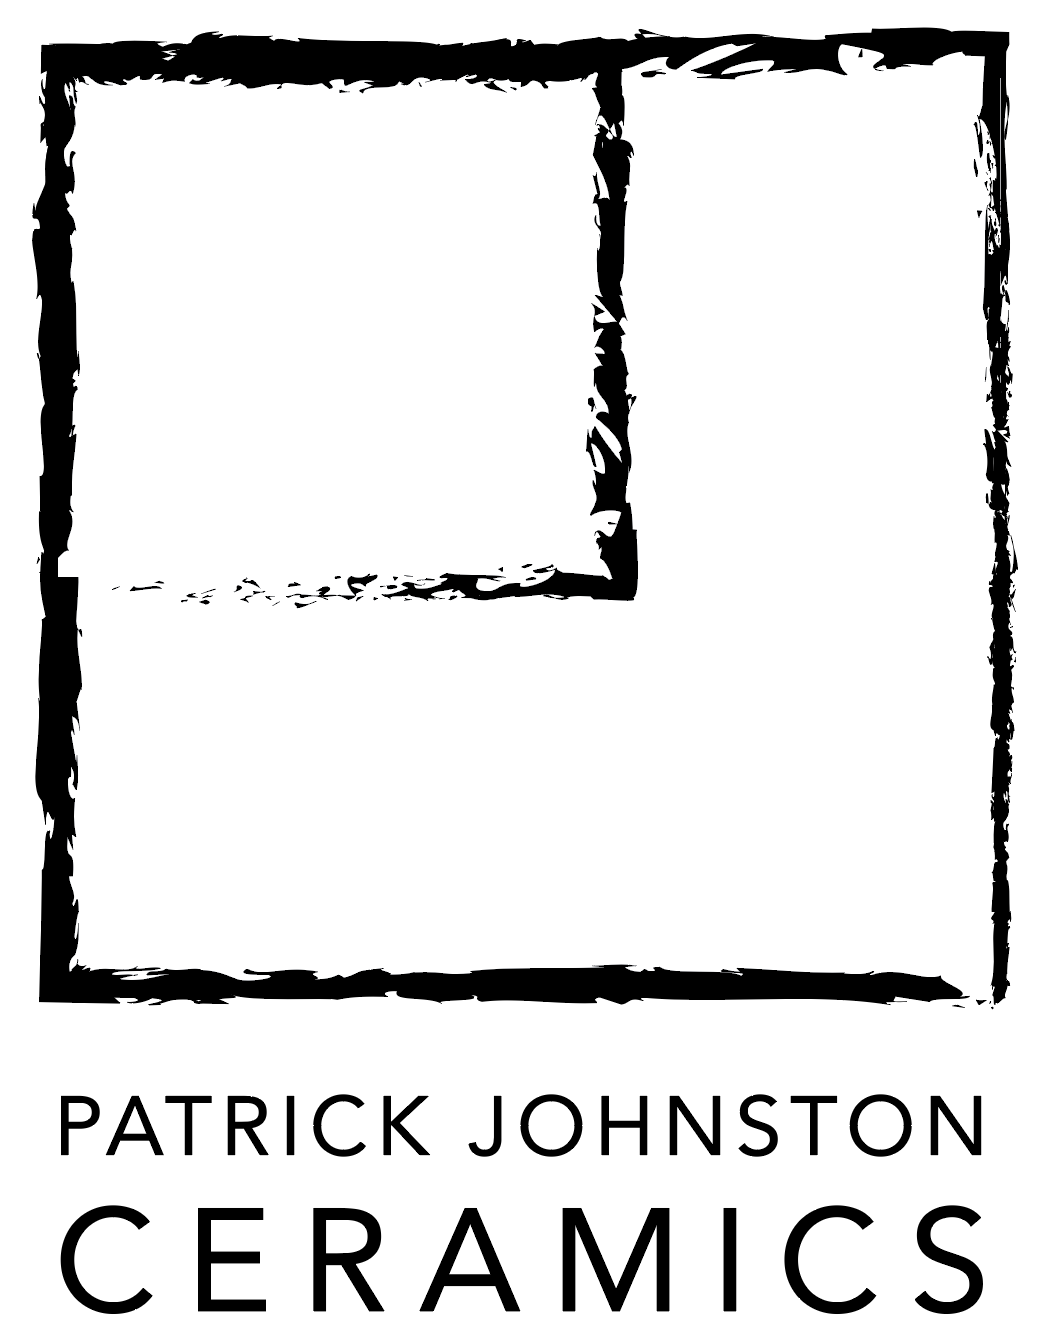 Patrick Johnston Ceramics